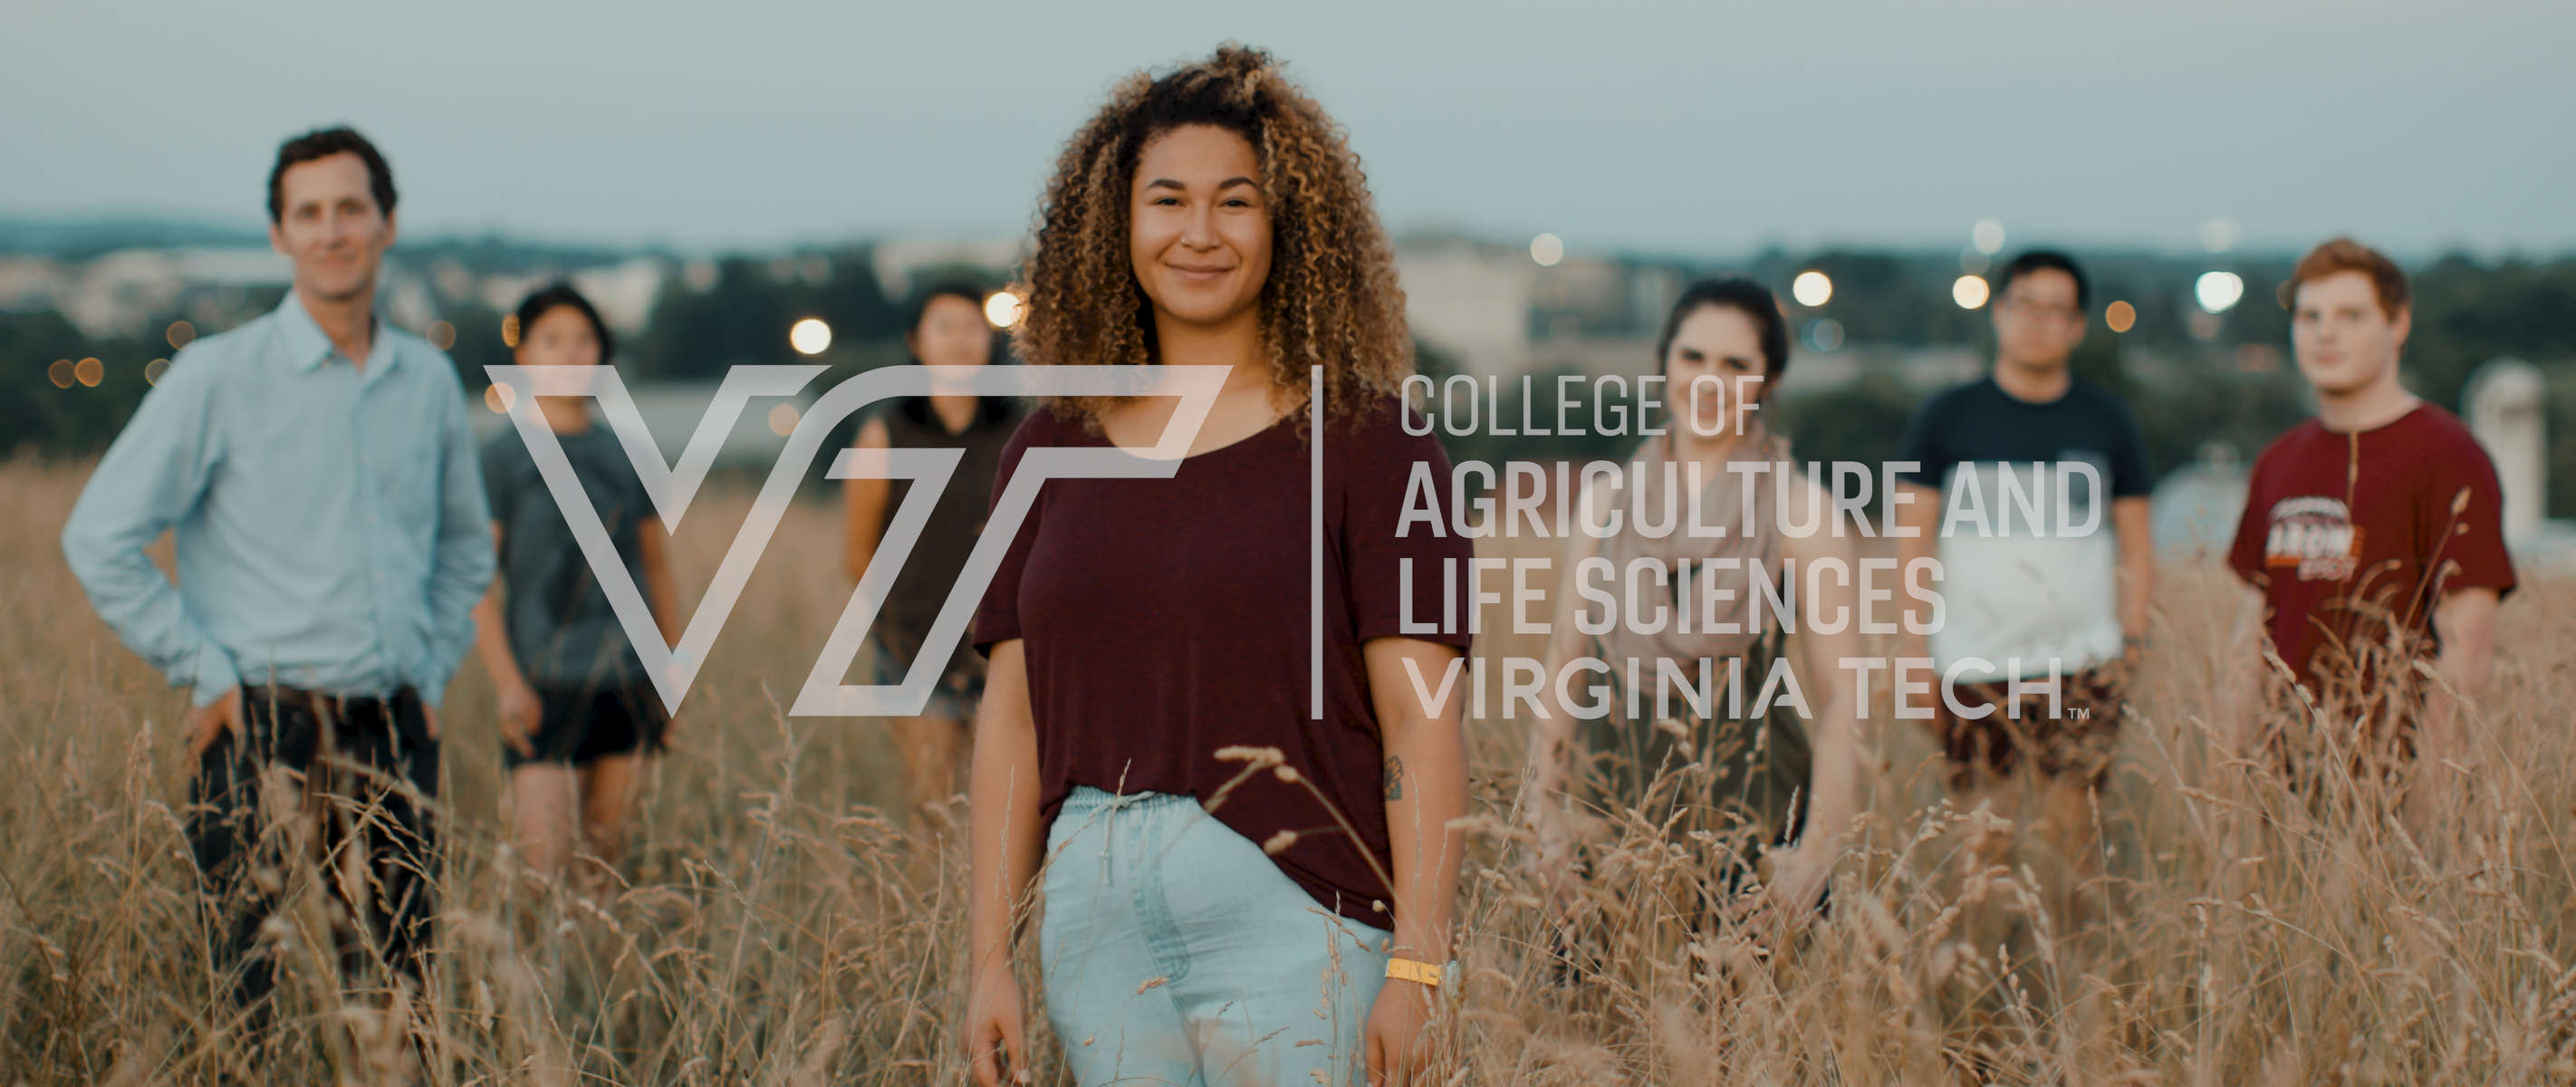 It's Who We Are, a higher education brand film for Virginia Tech.